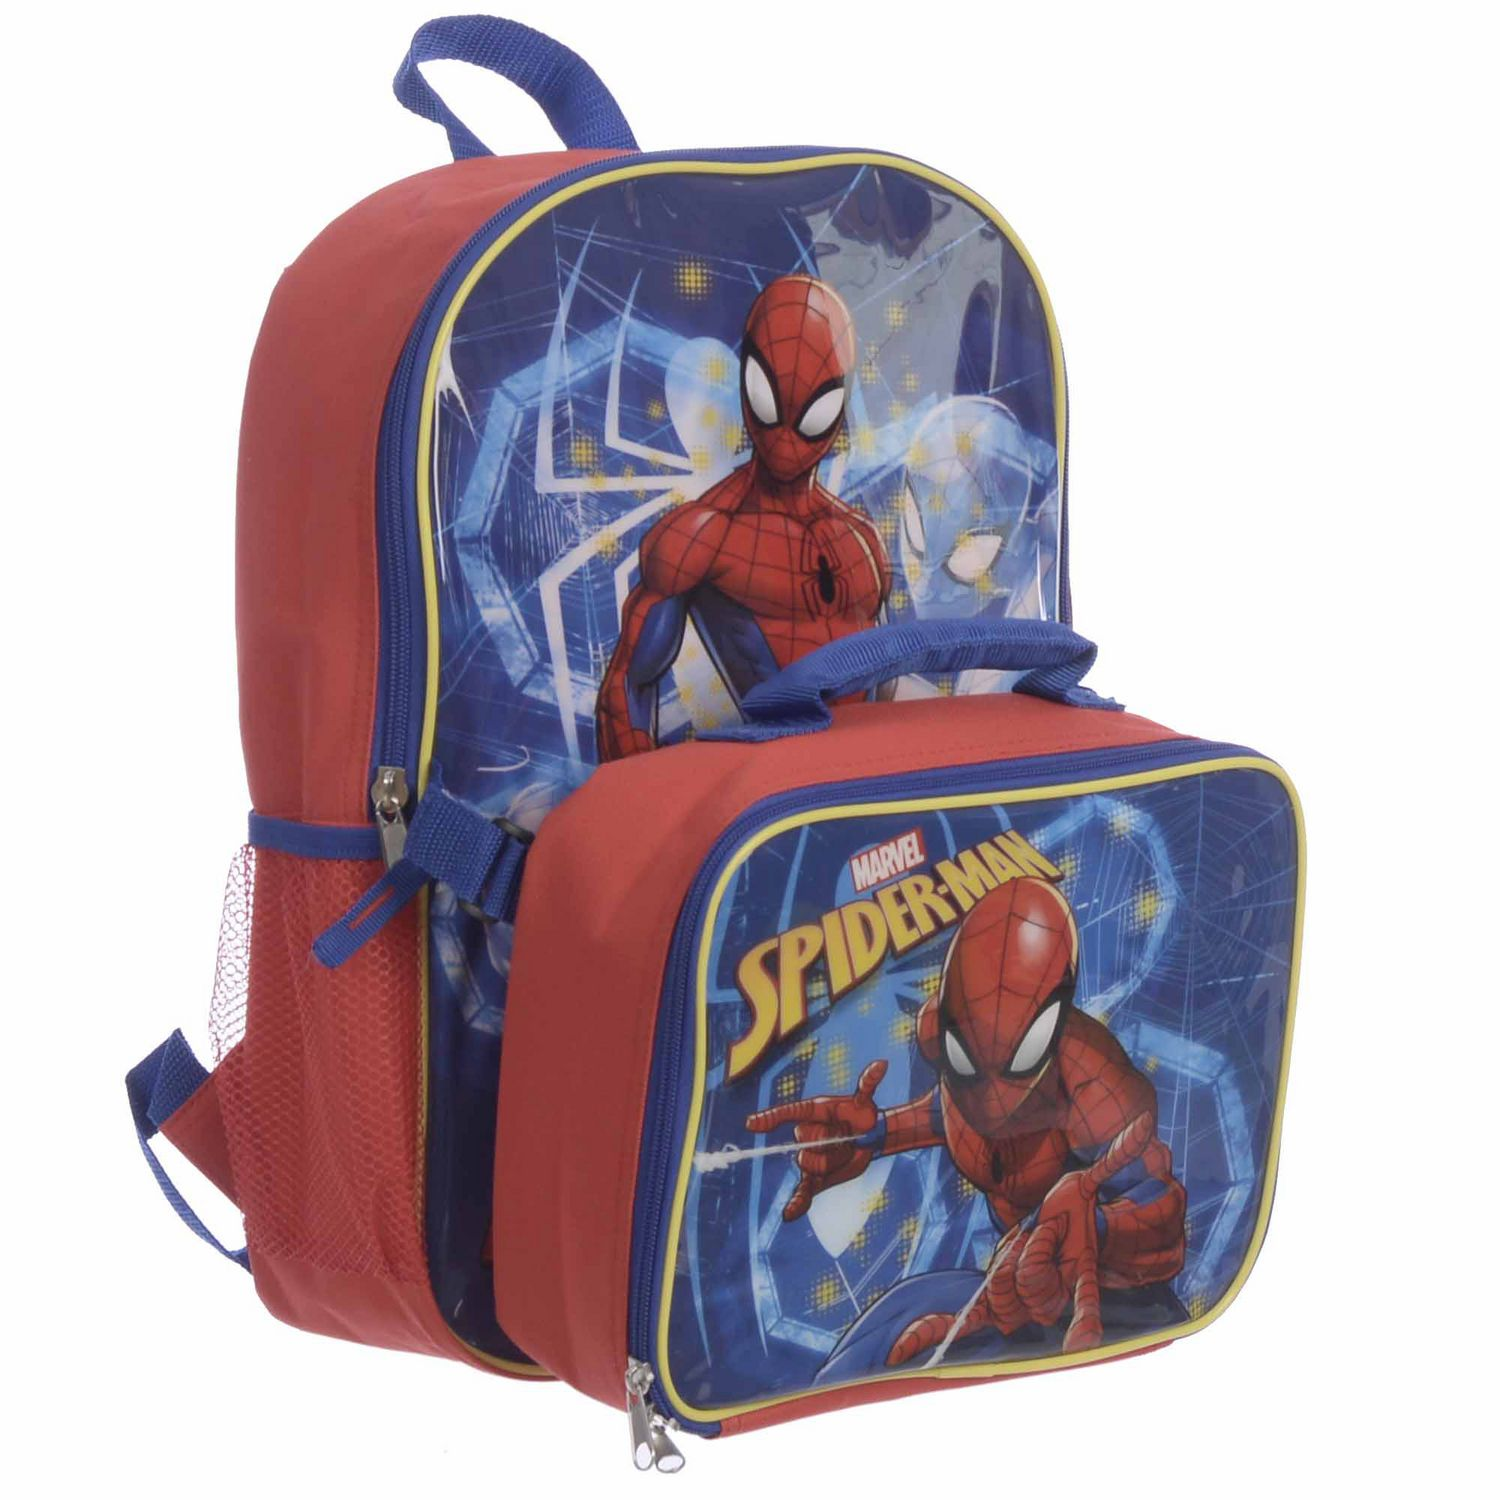 Spider Man Spiderman Backpack with Lunch Kit Combo 196f26565ac08